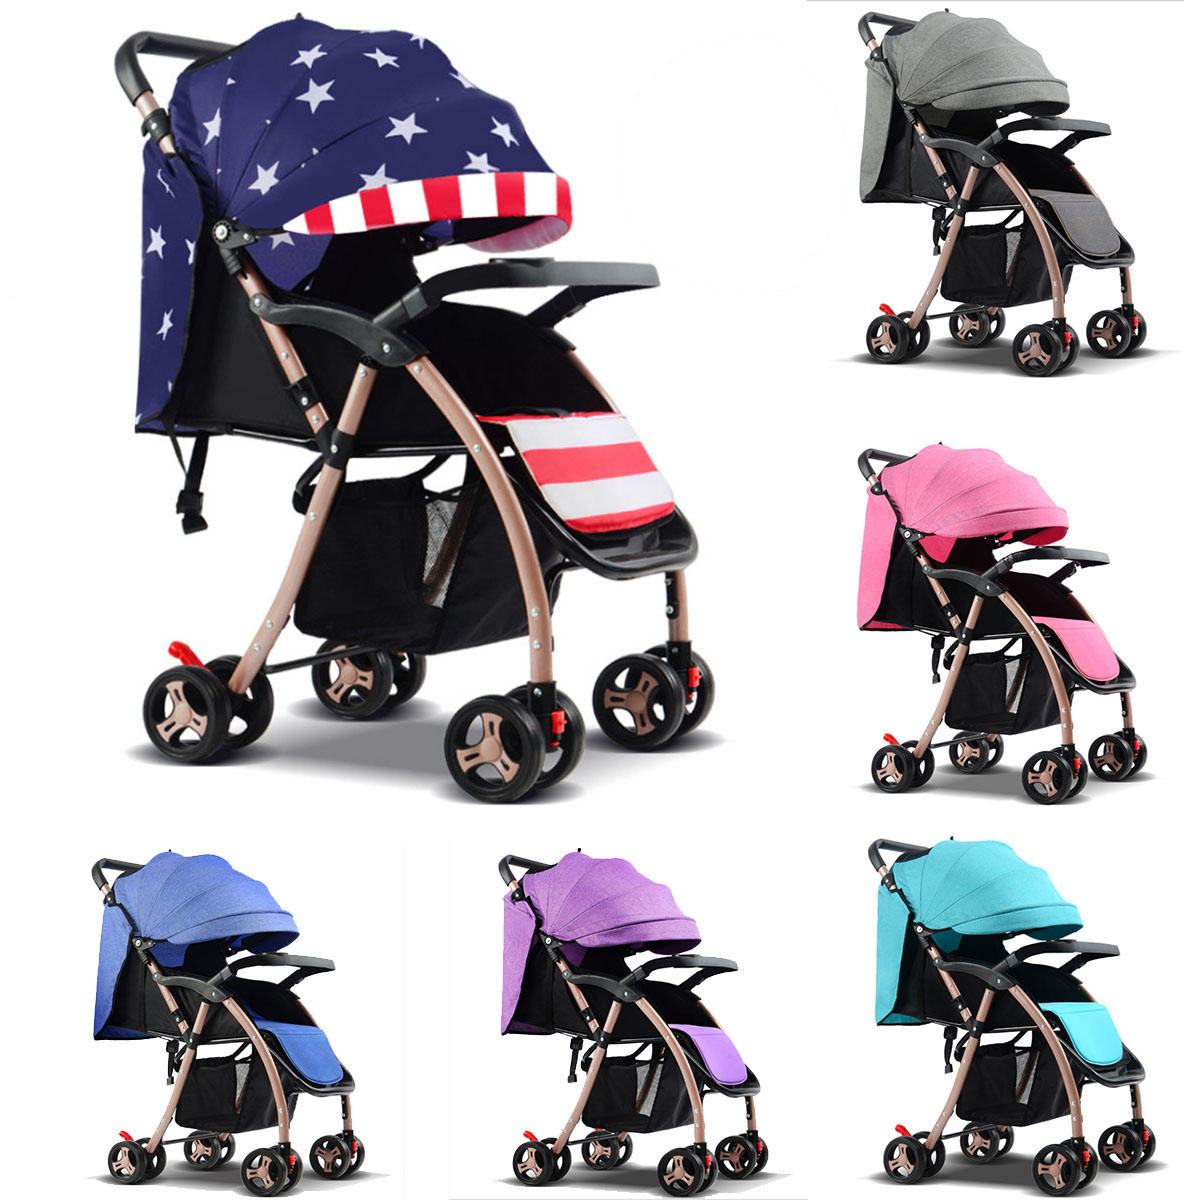 Compact Stroller Nz Foldable Baby Kids Stroller Newborn Infant Awning Pushchair Buggy Travel Pram Lightweight Compact Strollers